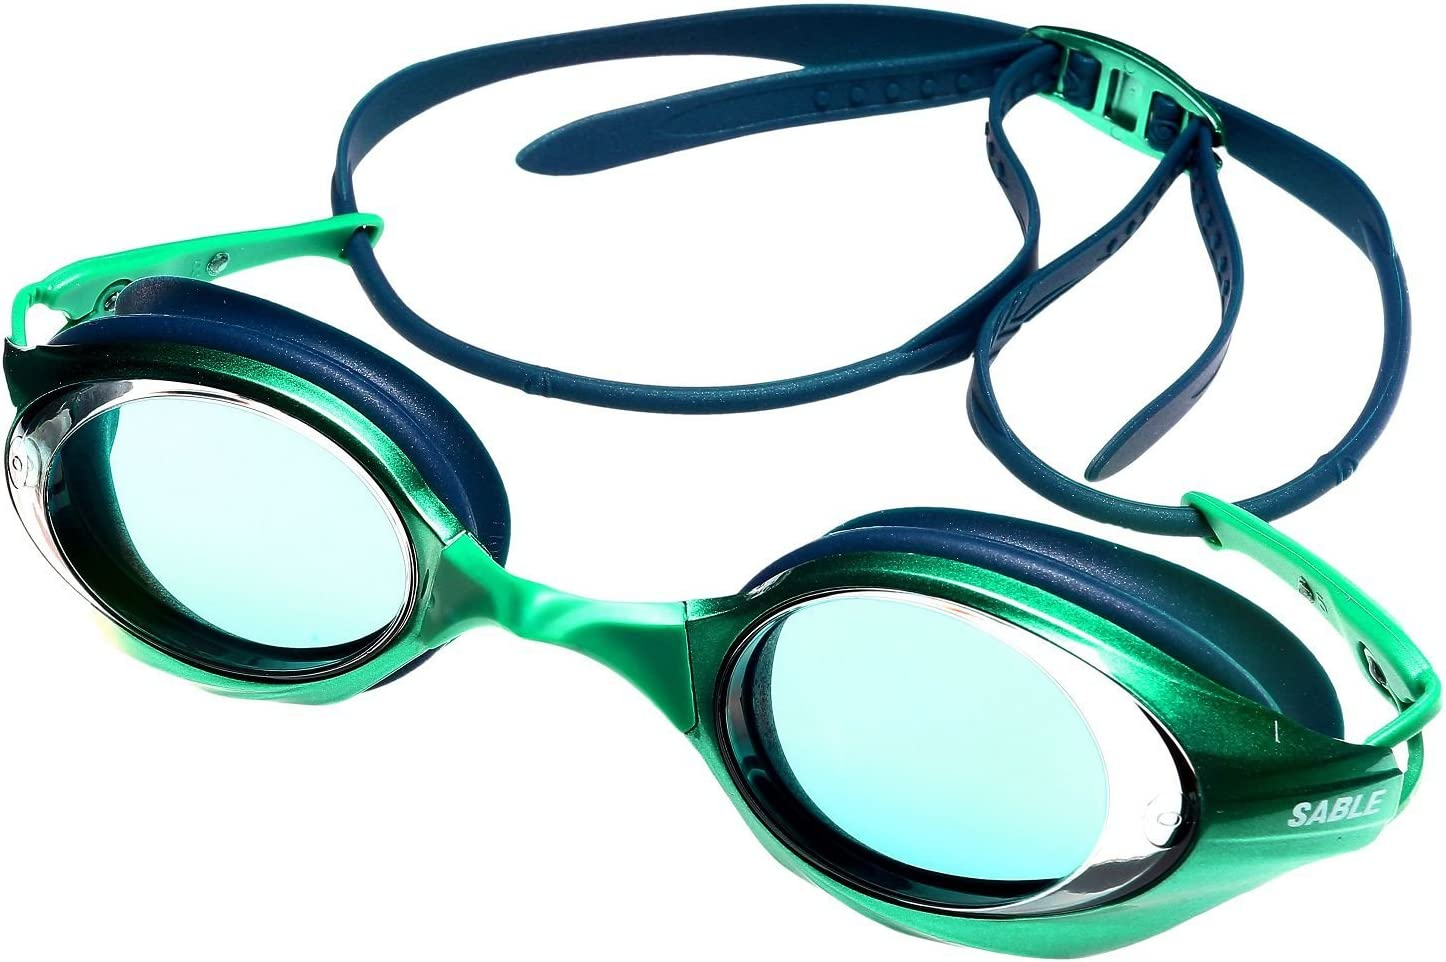 Sable GX Max 54% OFF Polarized Dealing full price reduction Level 3 Swim Professional Goggle Green